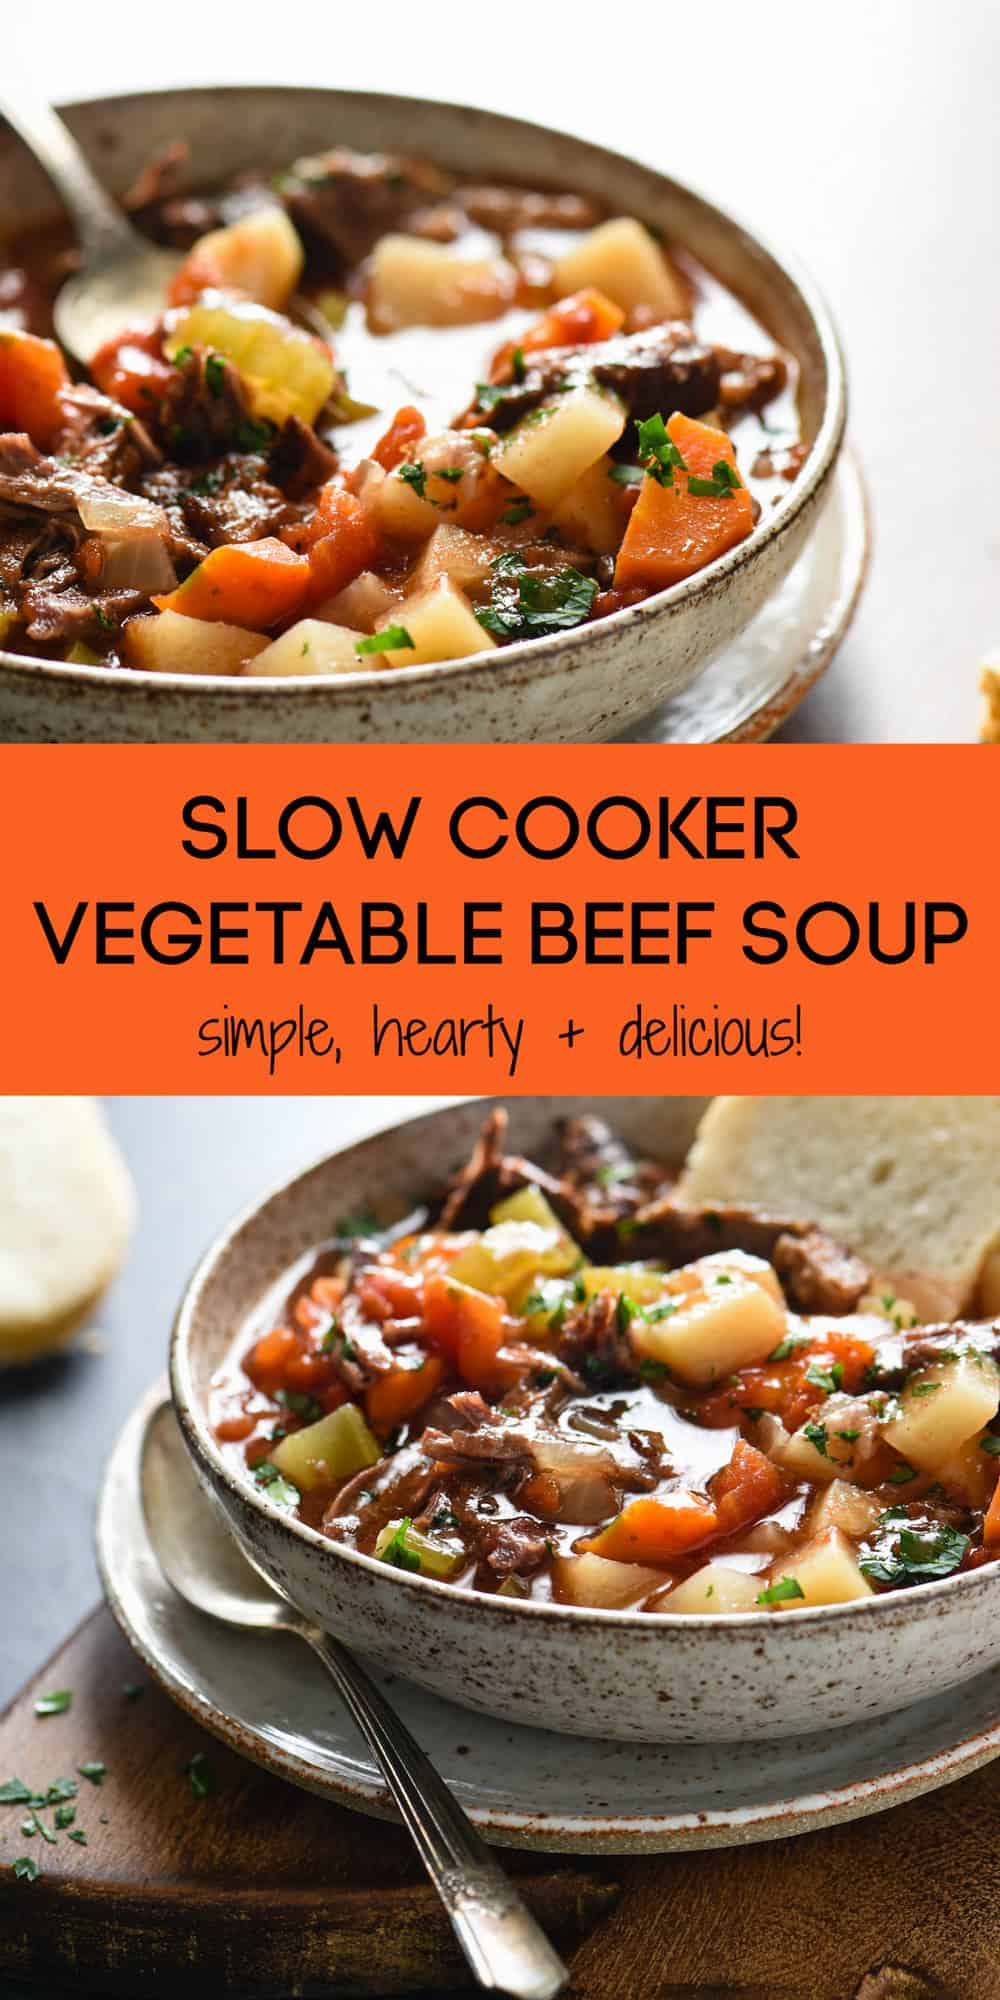 Collage of images of vegetable and beef soup with overlay: SLOW COOKER VEGETABLE BEEF SOUP simple hearty + delicious!